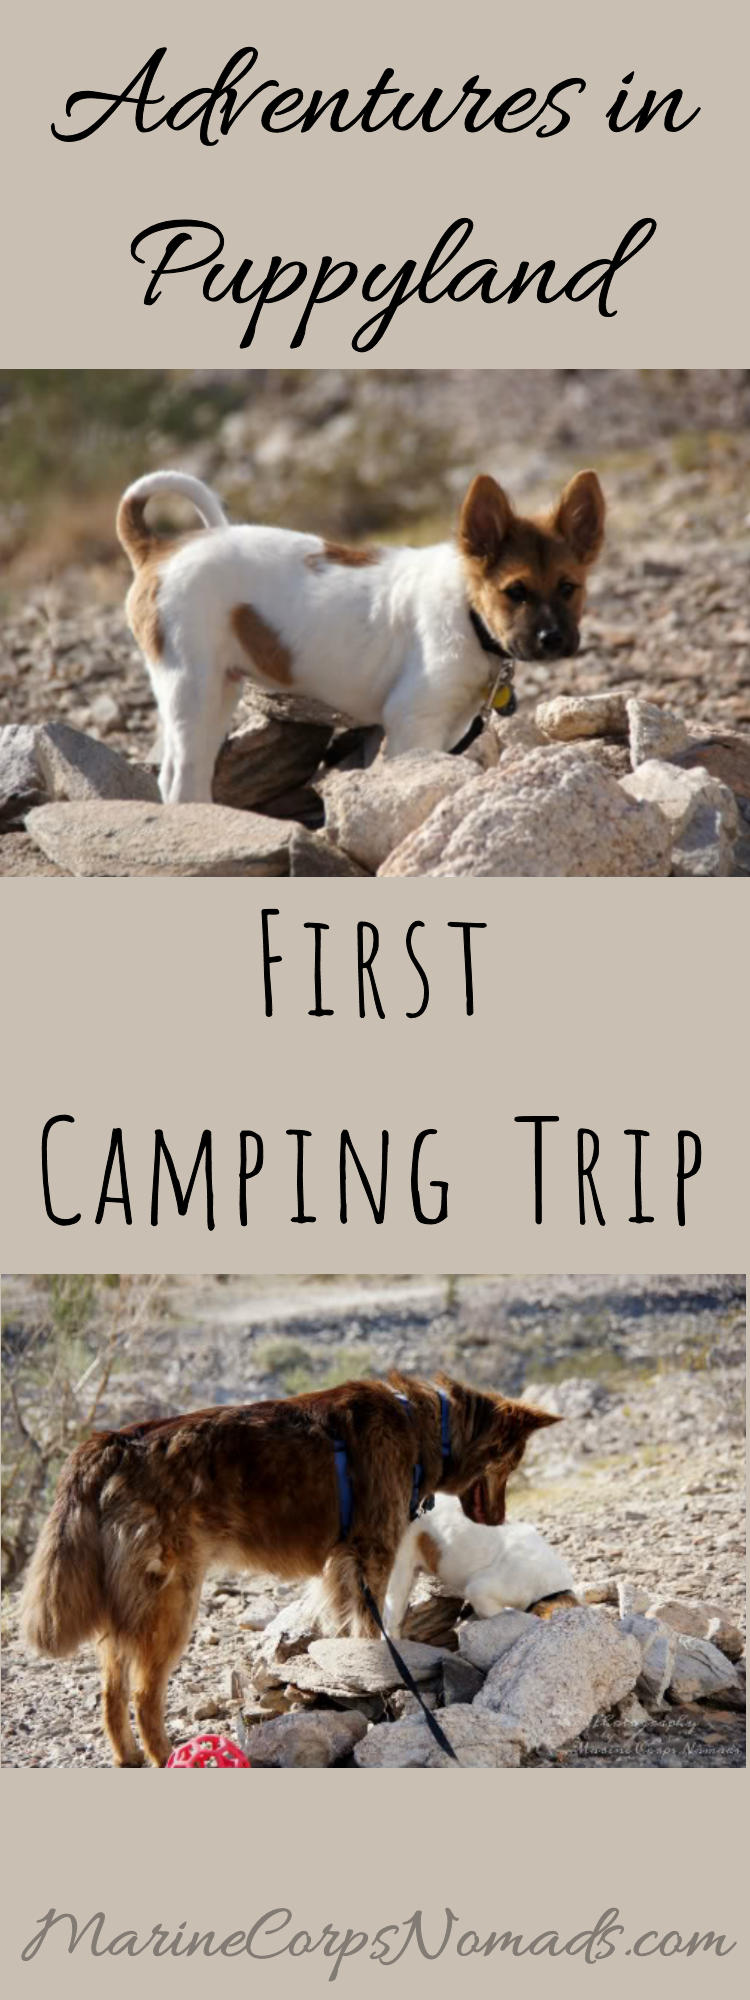 Adventures in Puppyland First Camping Trip | Kofa National Wildlife Refuge | Explore Arizona | Camping with Dogs | Marine Corps Nomads